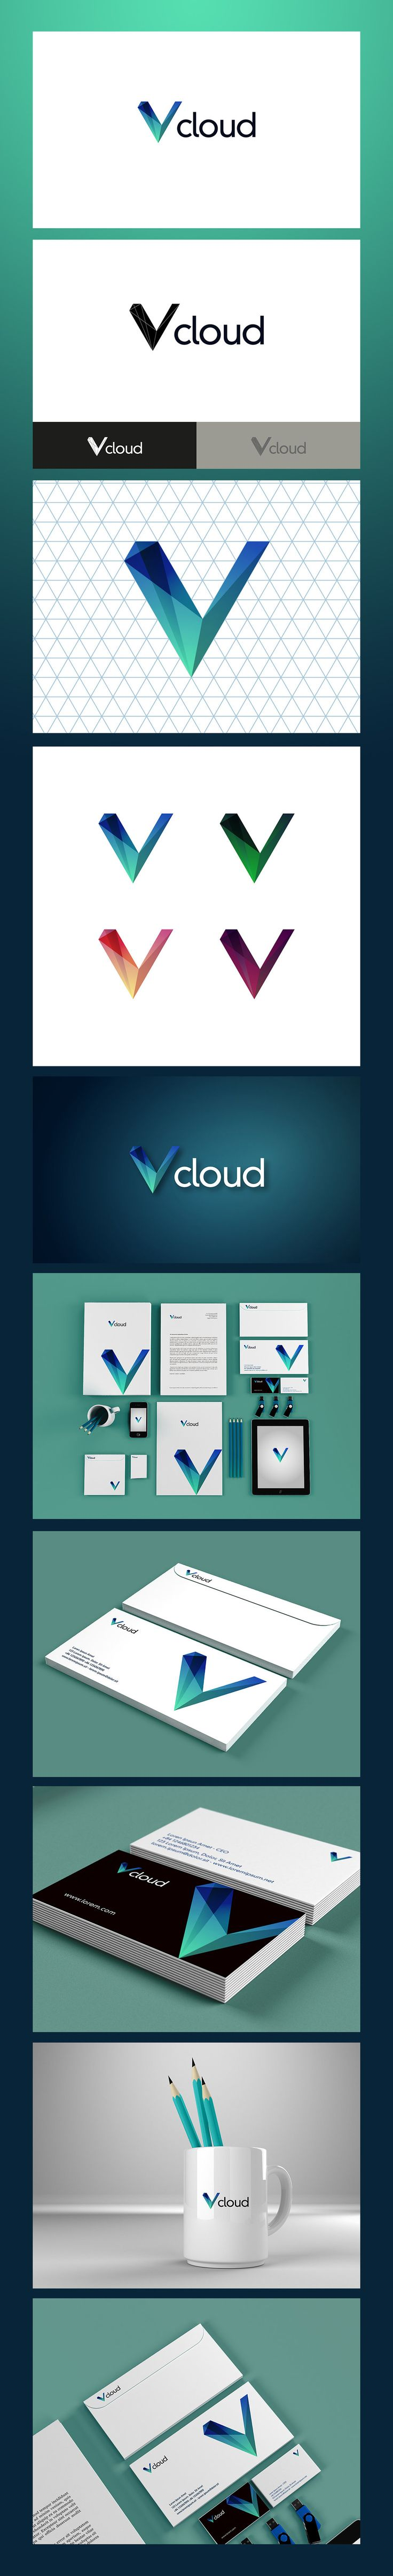 Vcloud visual identity || Introducing Moire Studios a thriving website and graphic design studio. Feel Free to Follow us @moirestudiosjkt to see more amazing pins like this. Or visit our website www.moirestudiosjkt.com to know more about us. #brandIdentityDesign #corporateDesign #logoDesign ||